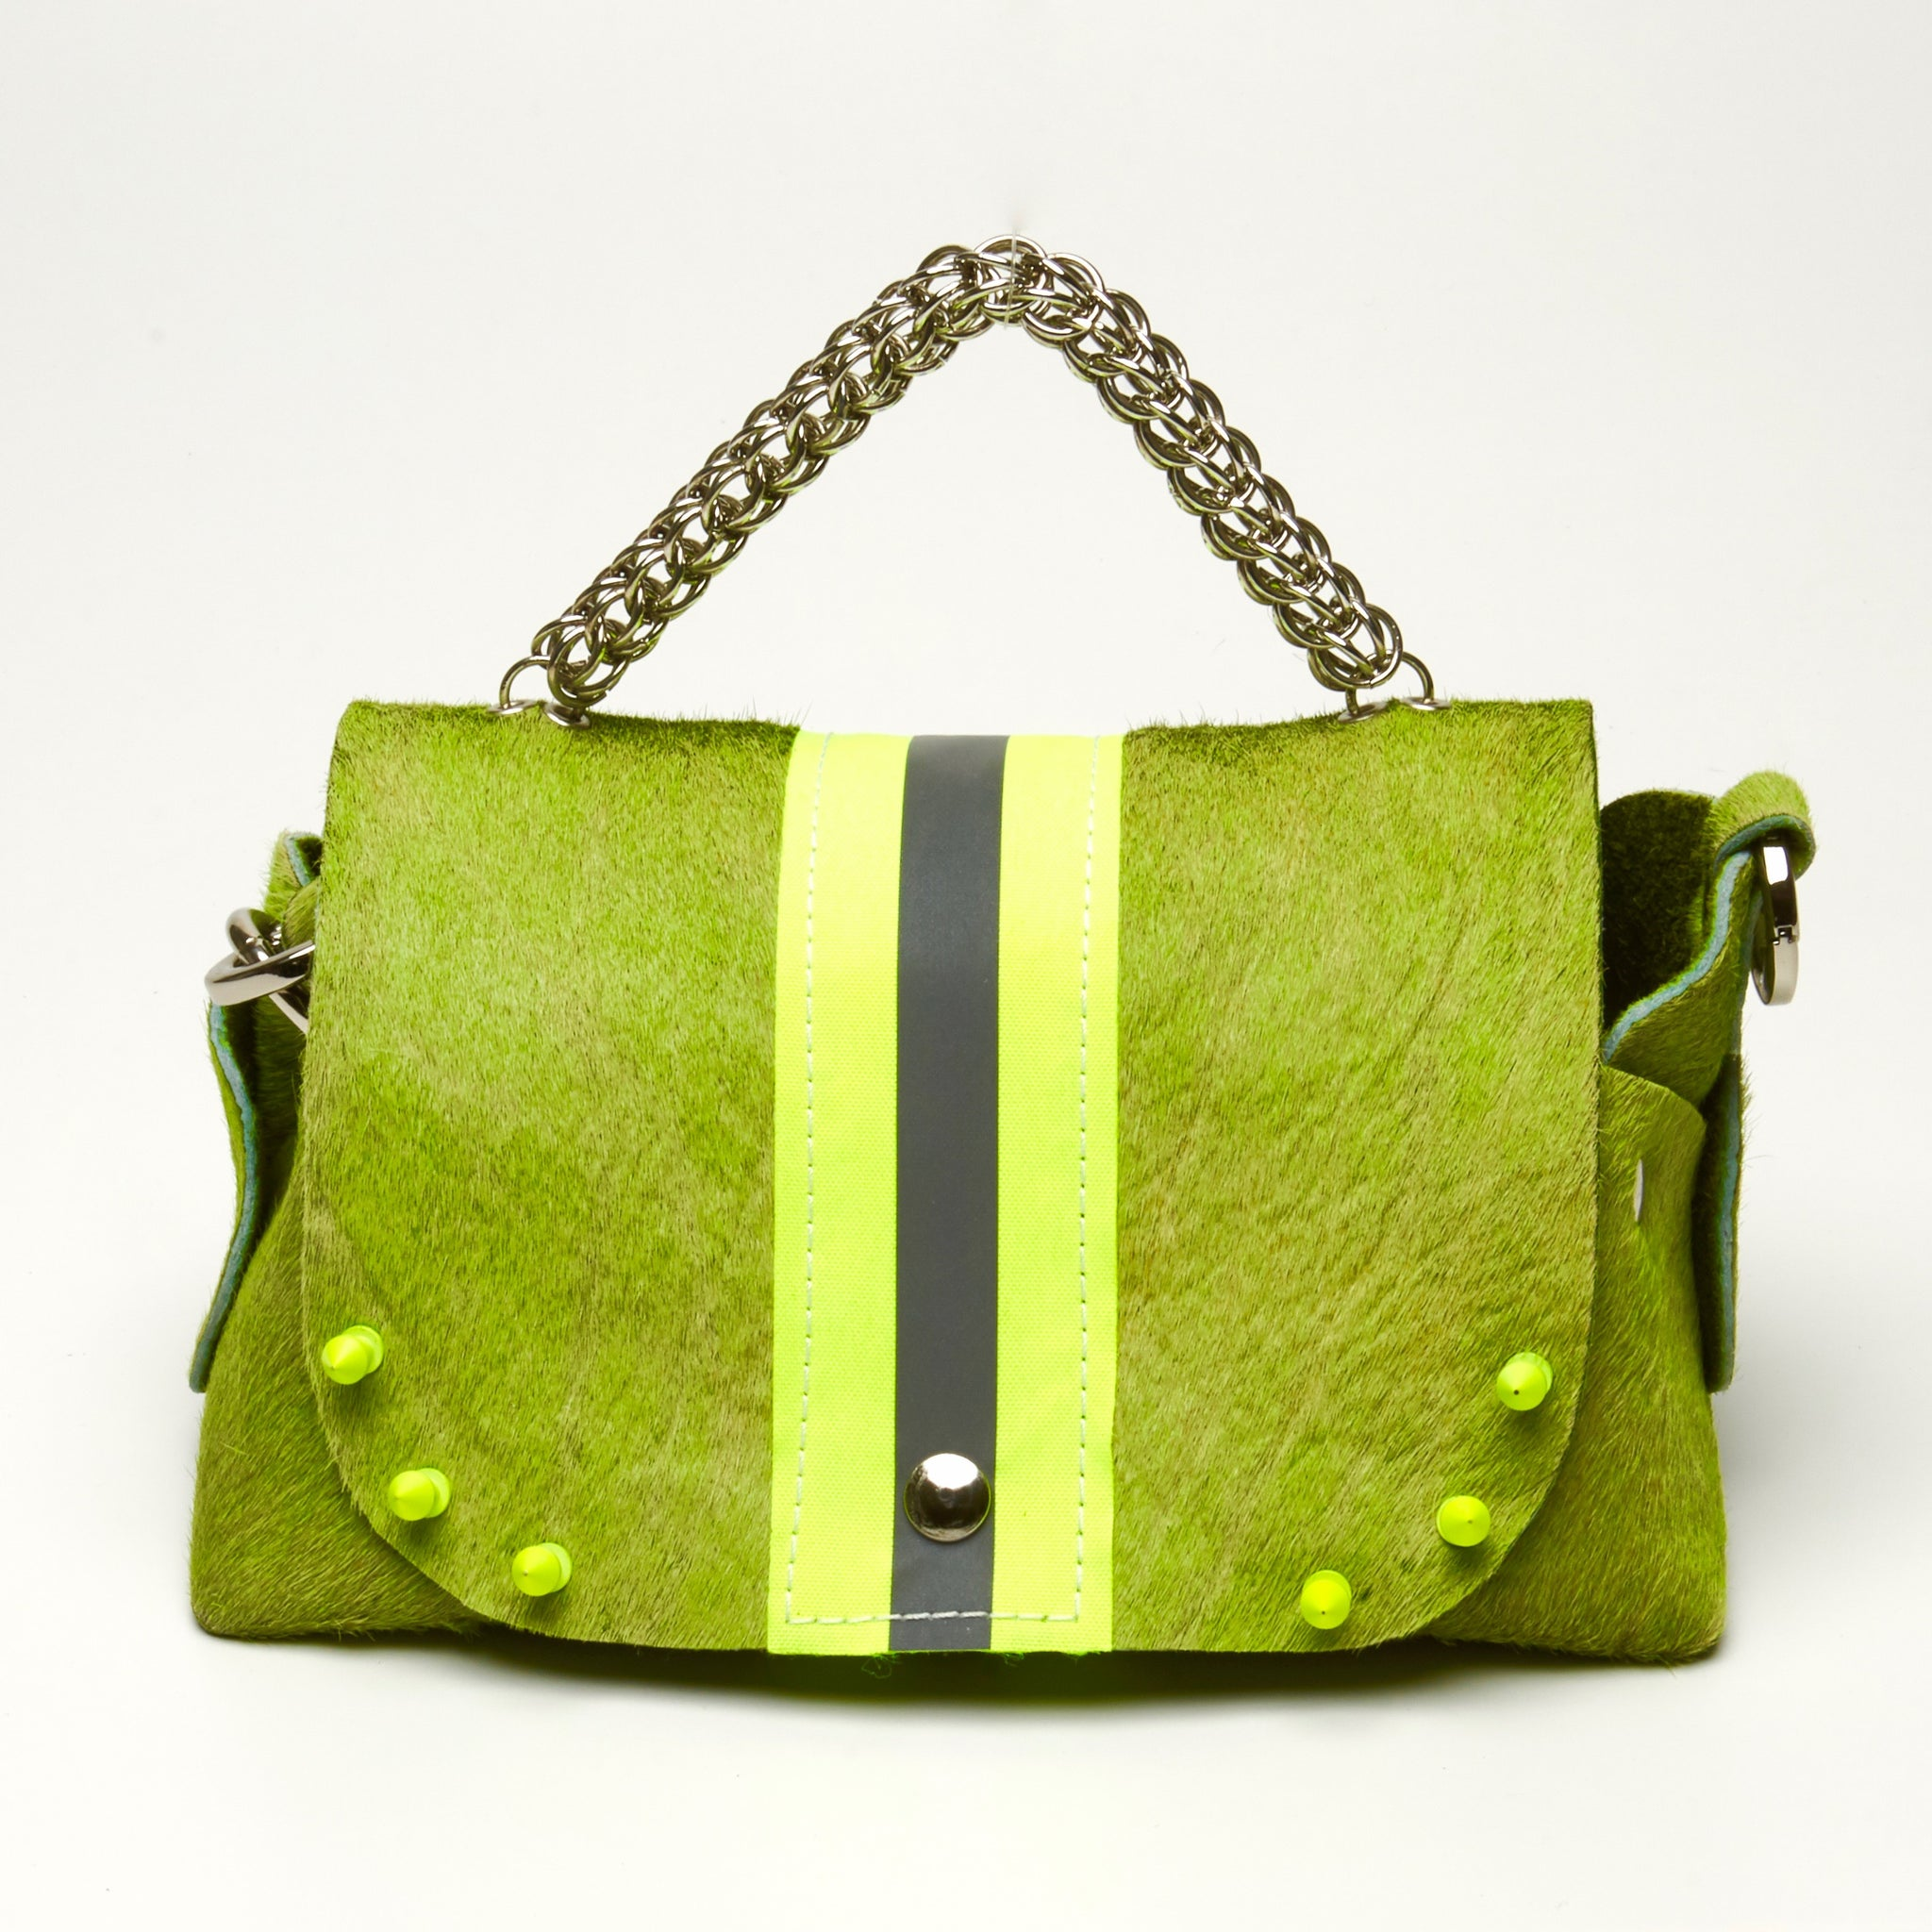 HAIR-ON COWHIDE LEATHER WITH WIDE NEON YELLOW REFLECTIVE TRIM RIVETED DAY-TO-EVENING BAG WITH STAINLESS STEEL METAL HARDWARE, CHAIN MAILLE HANDLE AND REMOVABLE SHOULDER STRAP.